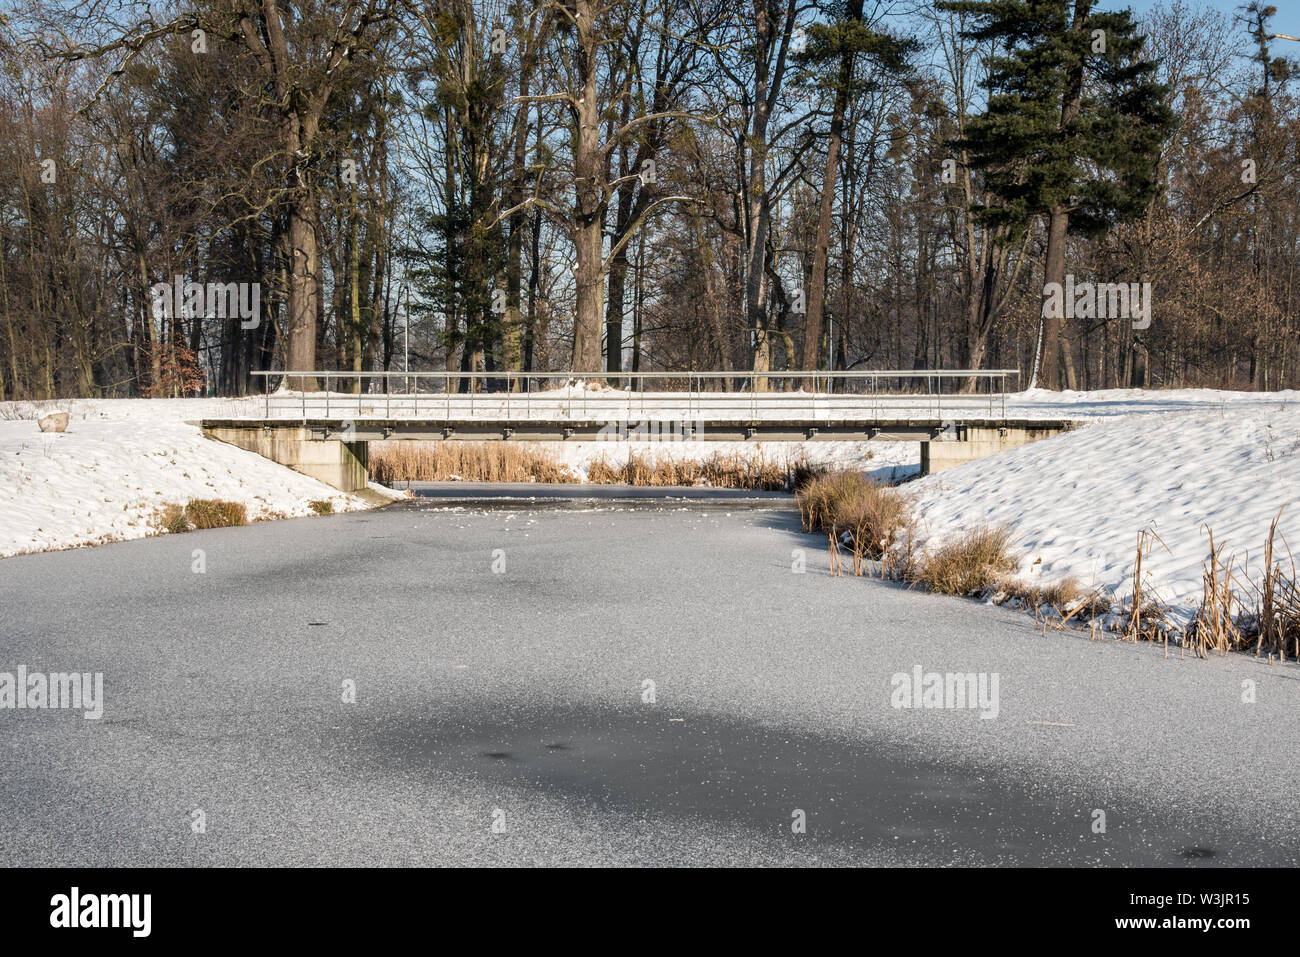 fozen Mlynka creek with bridge above and trees on the background on Park Bozeny Nemcove public park in Karvina city in Czech republic during beuatiful Stock Photo